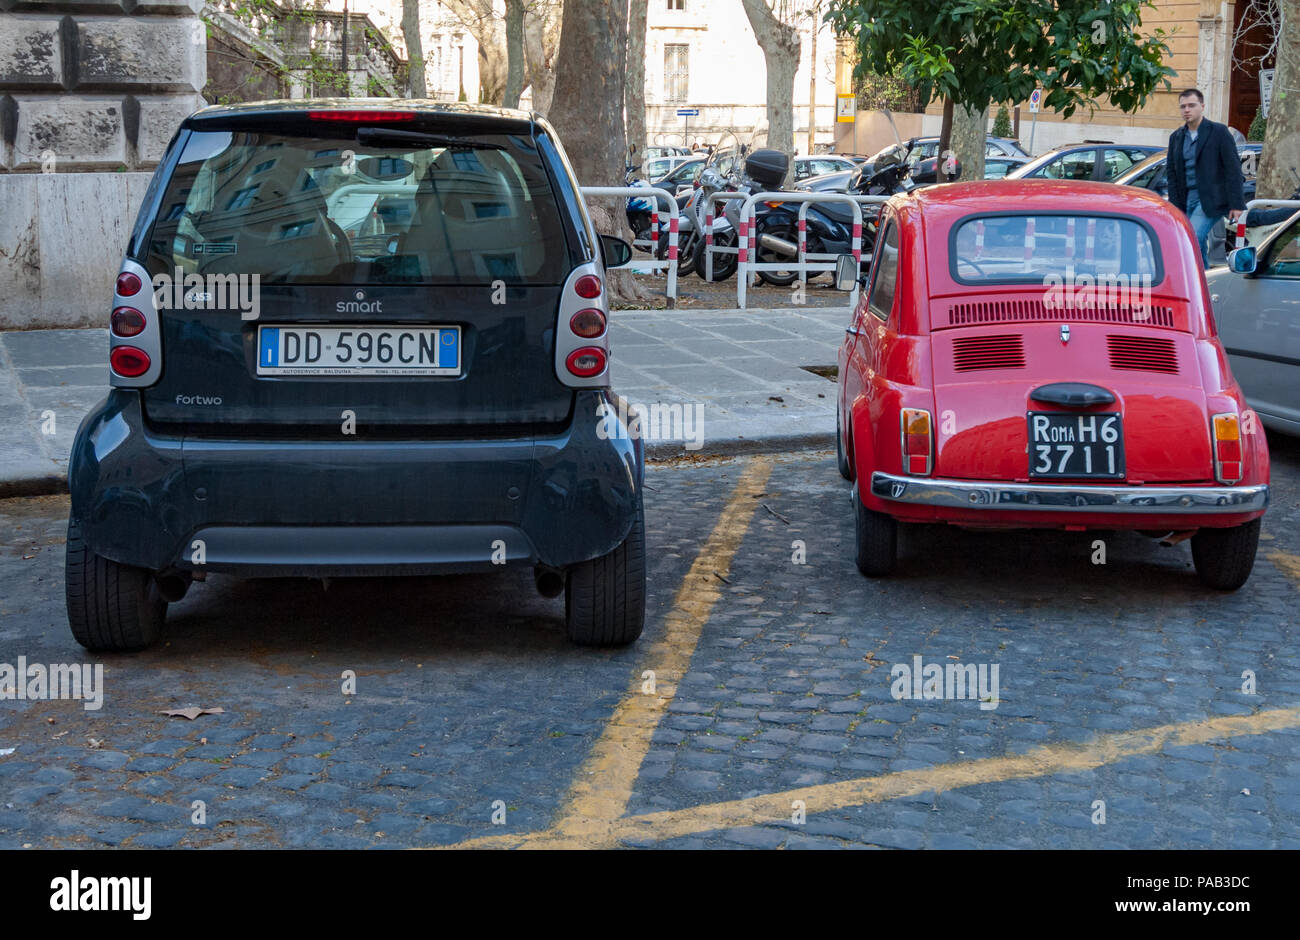 How our concept of small has changed over 40 years. An original Fiat Cinquecento beside a Smart fortwo car in a Rome side street. - Stock Image